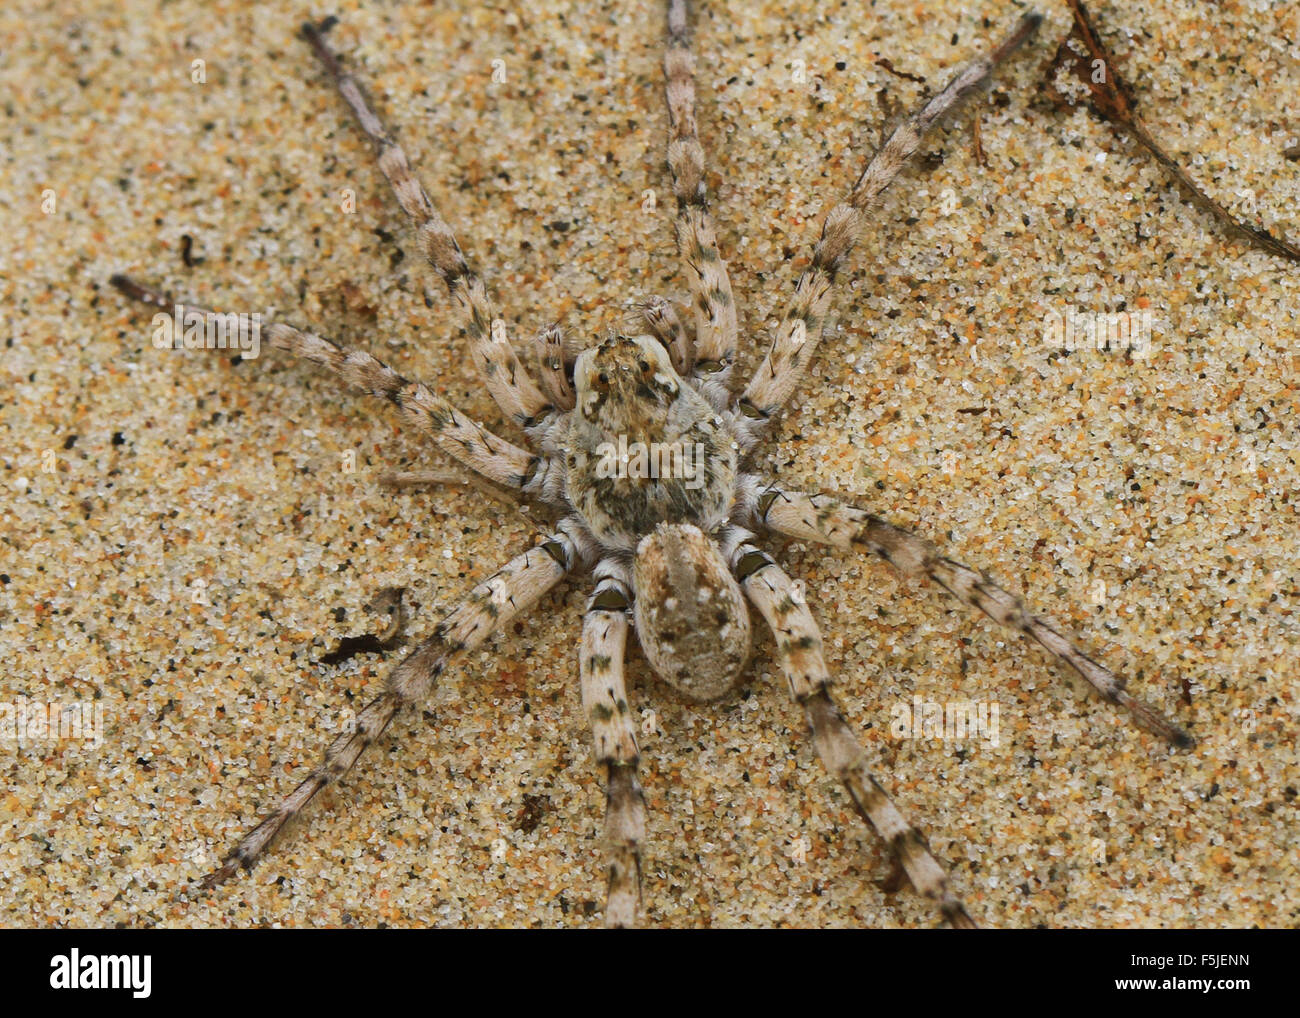 Spiders Of Michigan Stock Photos Spiders Of Michigan Stock Images